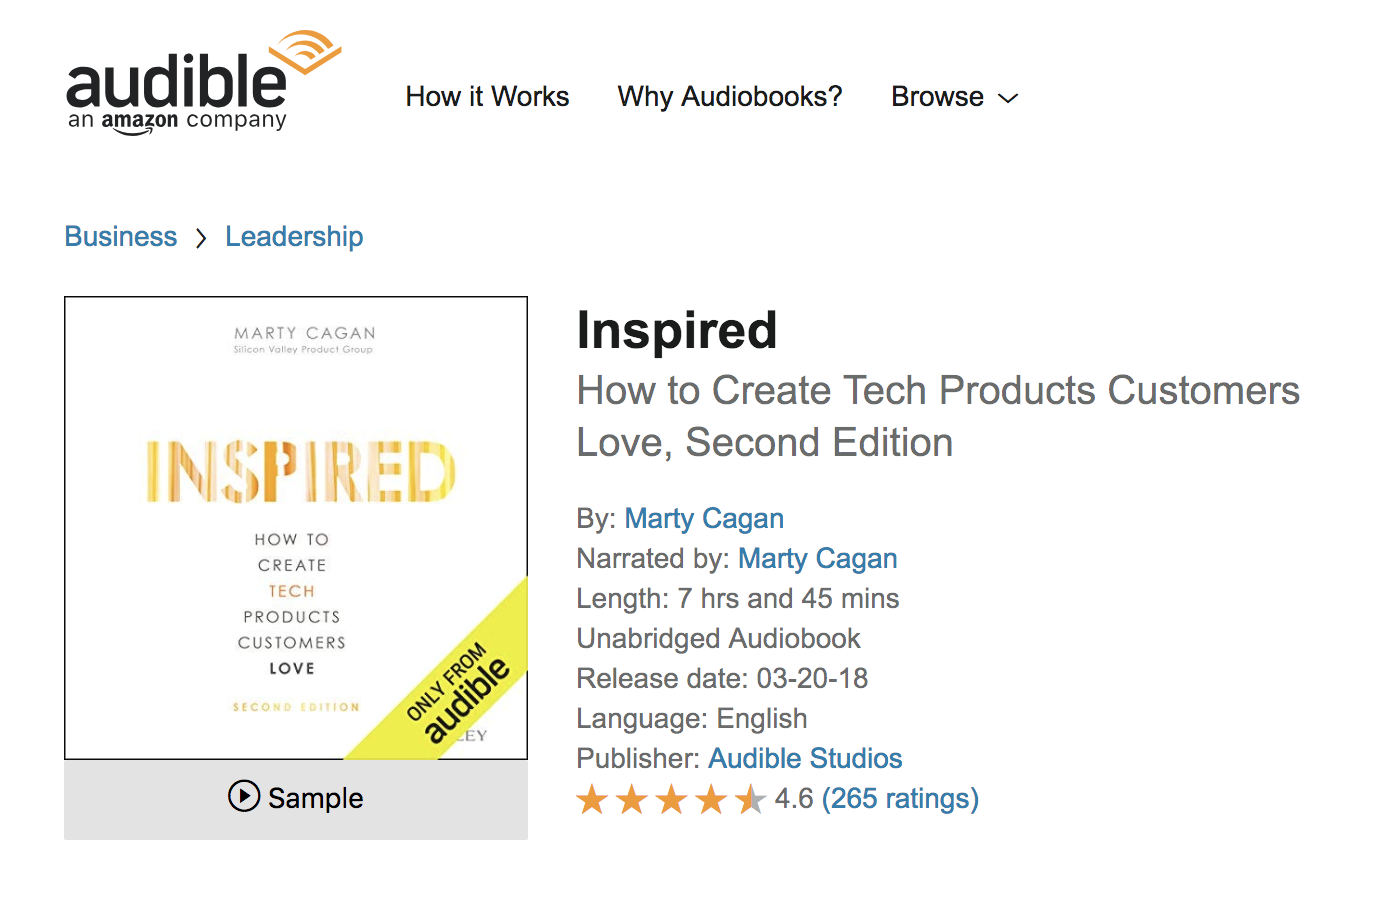 Inspired on Audible